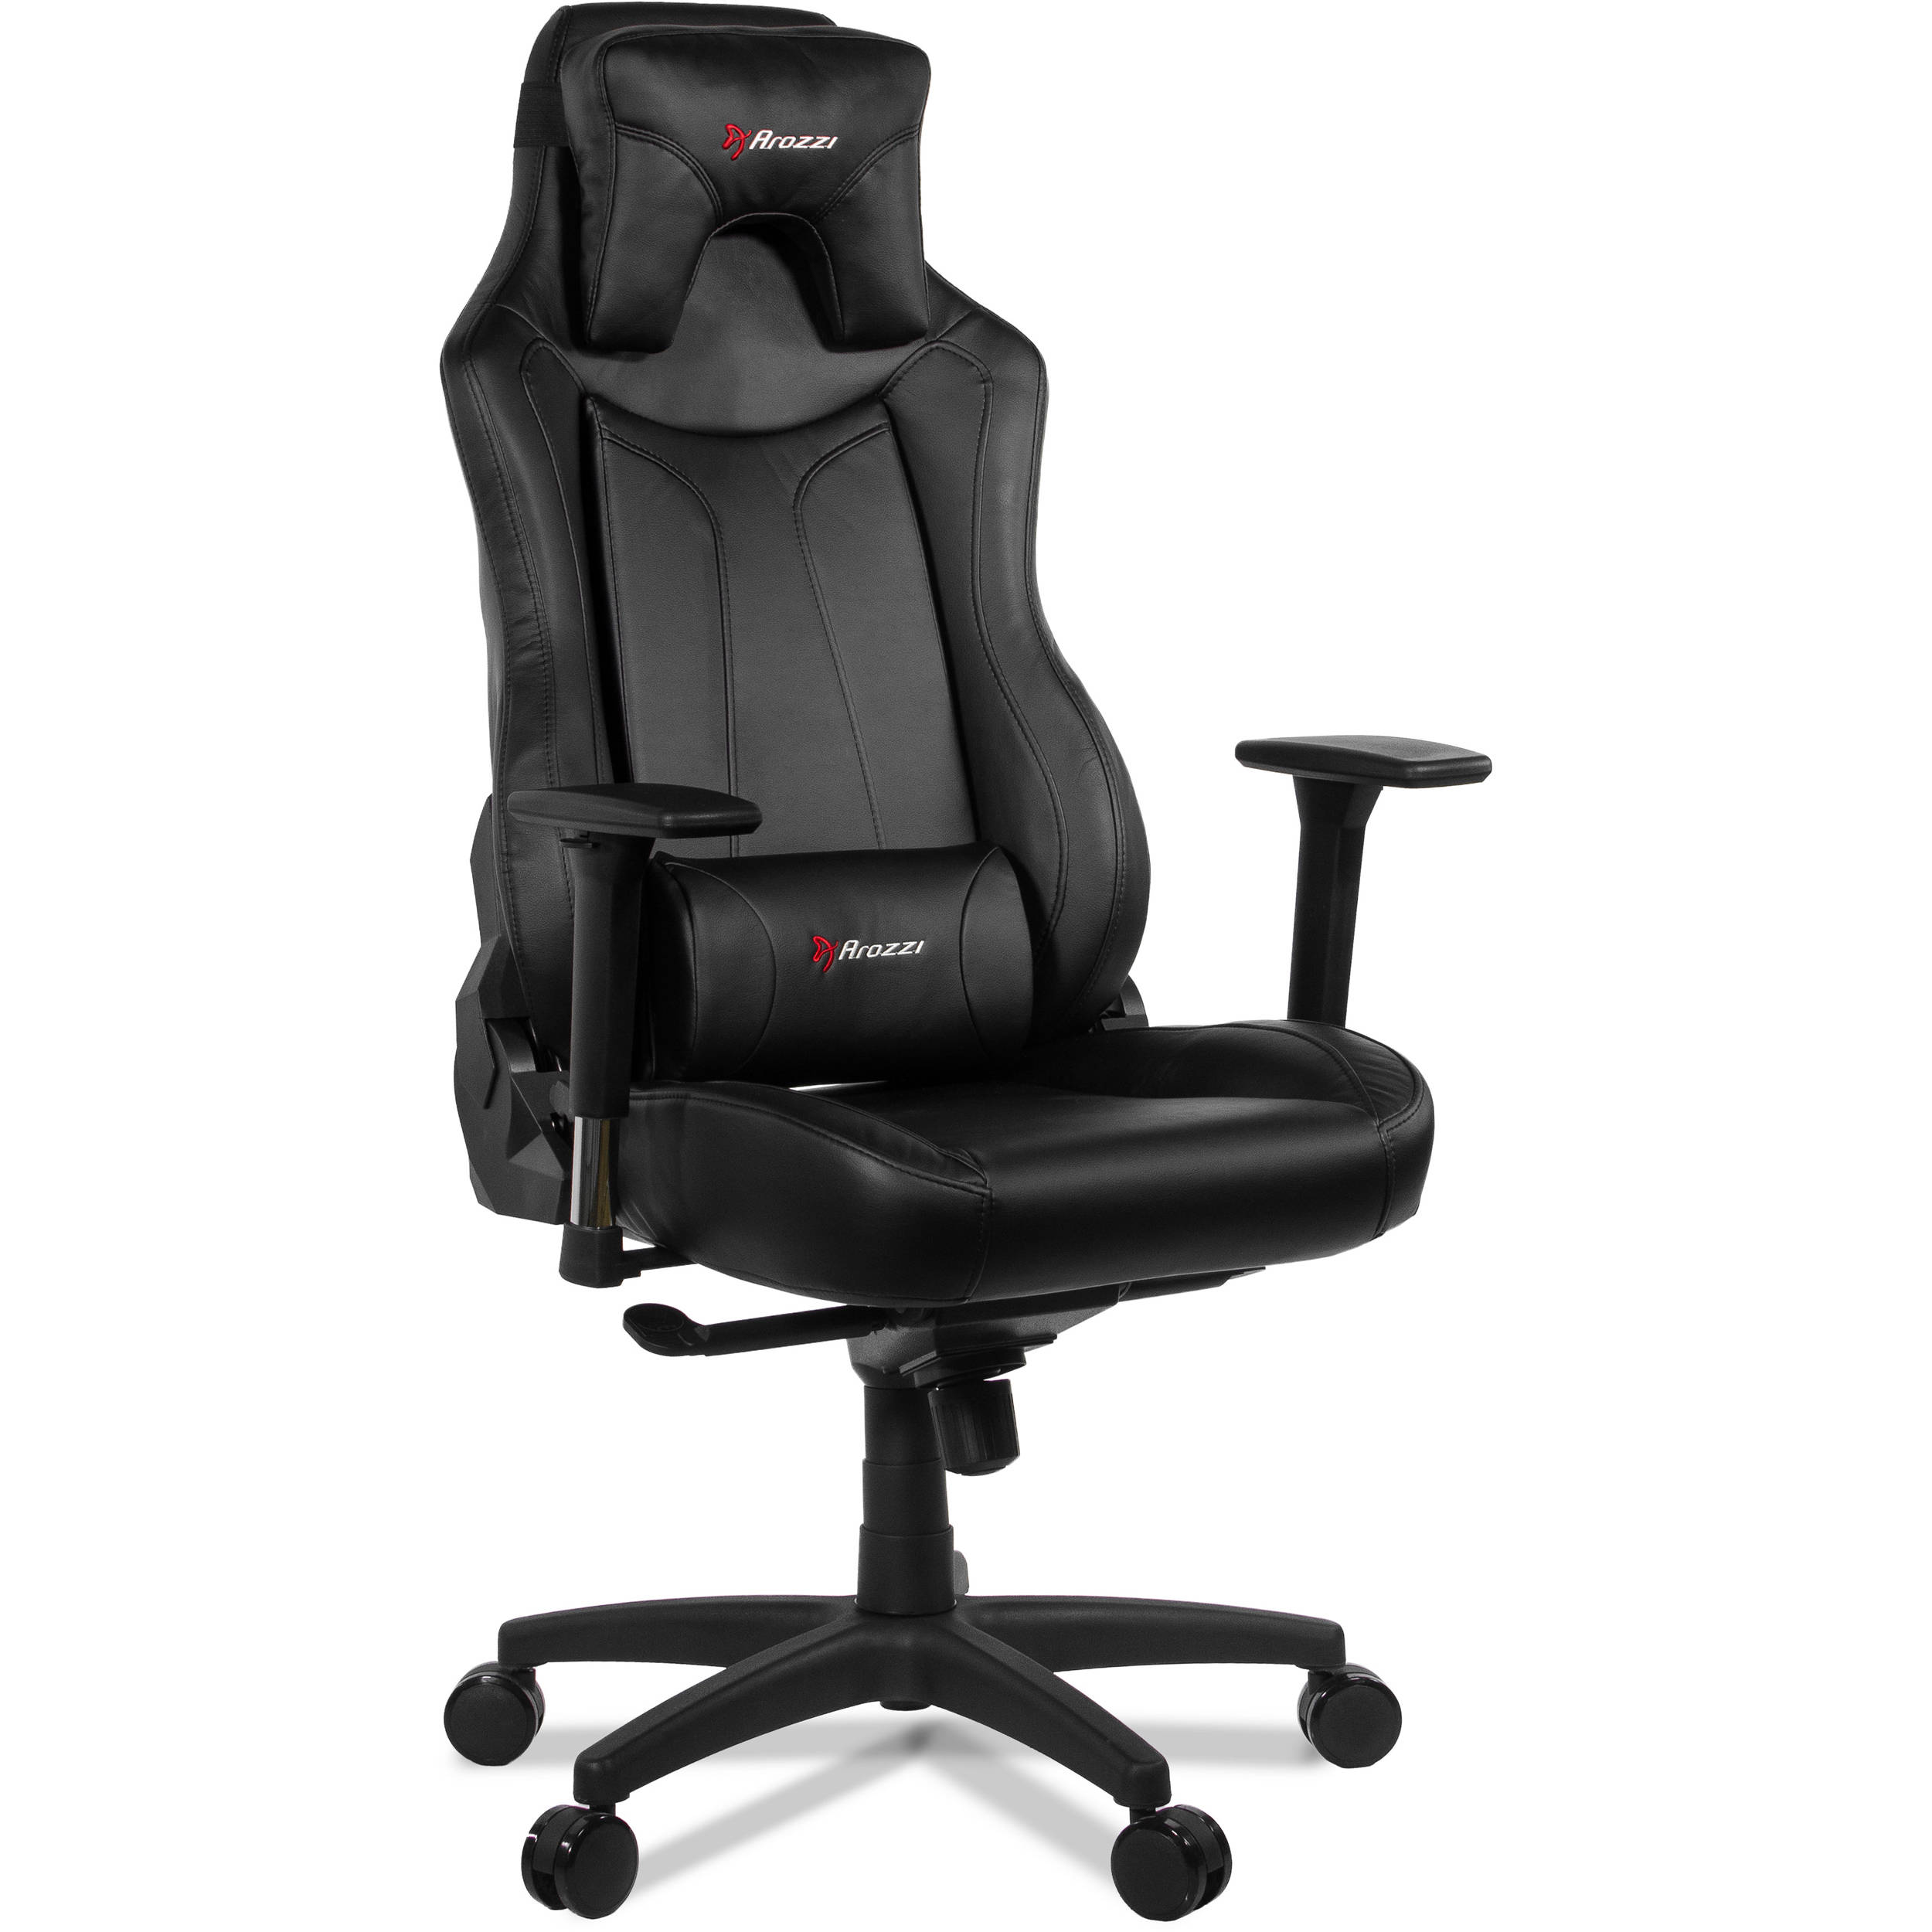 Arozzi Vernazza Gaming Chair Black VERNAZZA BK B&H Video